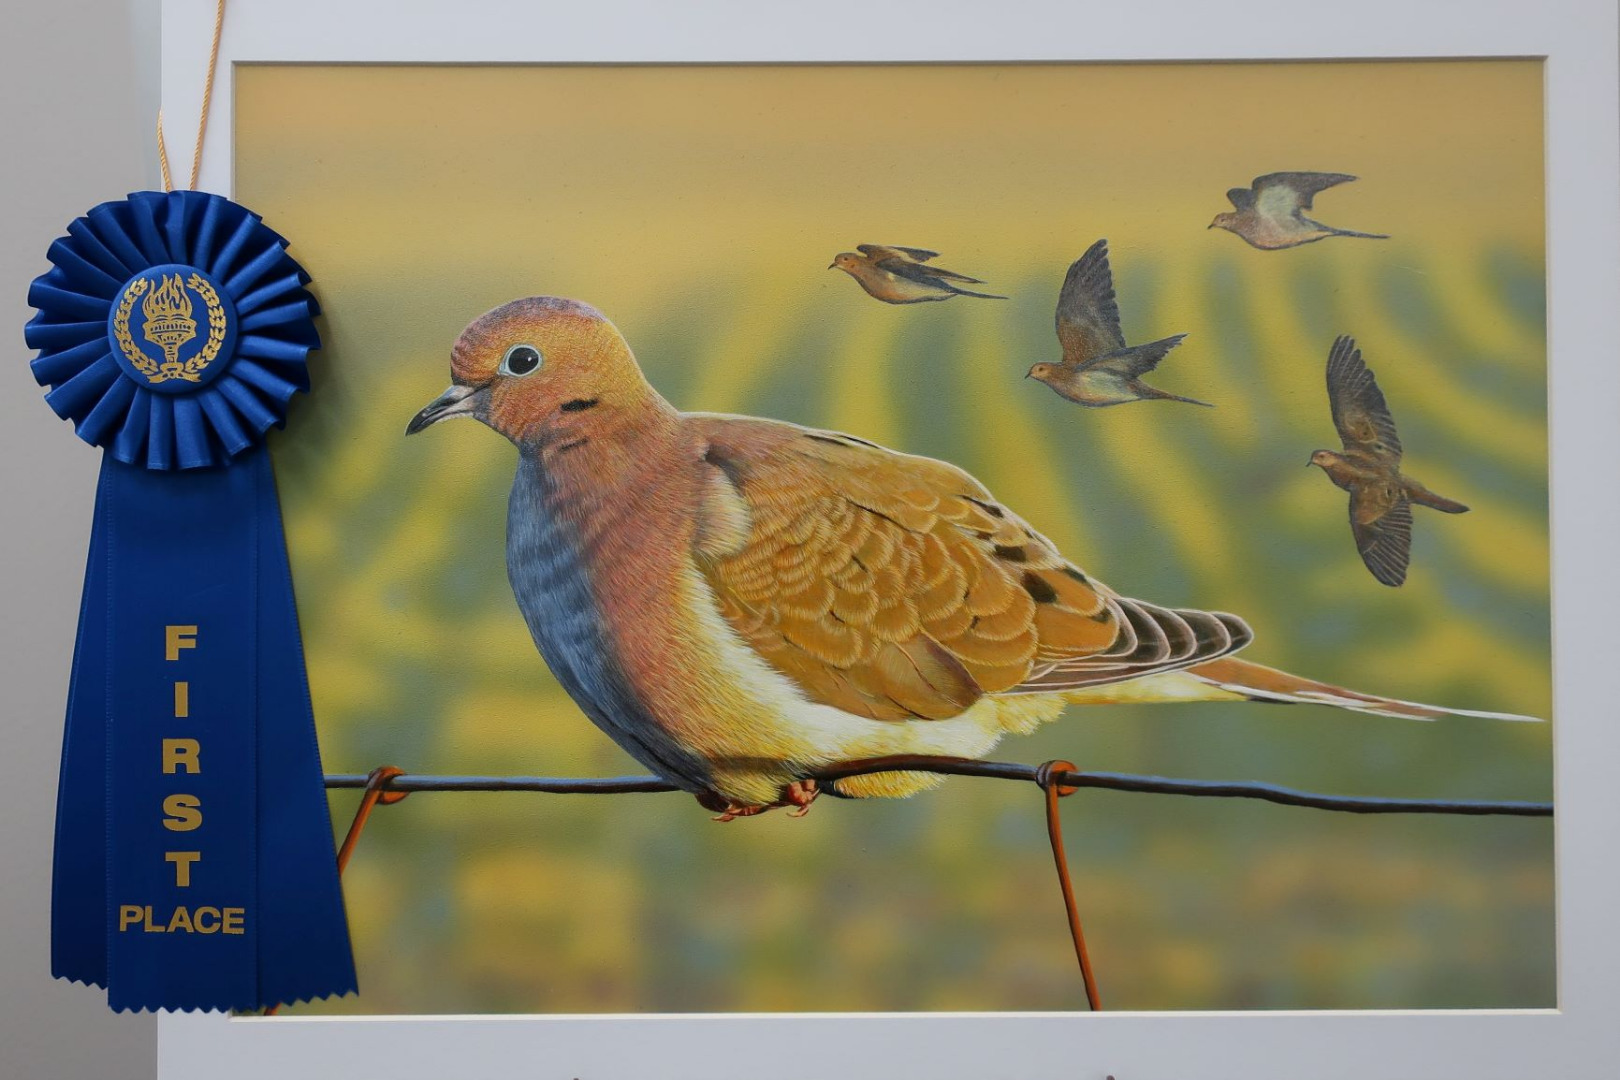 Oregon Artist Wins California Upland Game Bird Stamp Art Contest